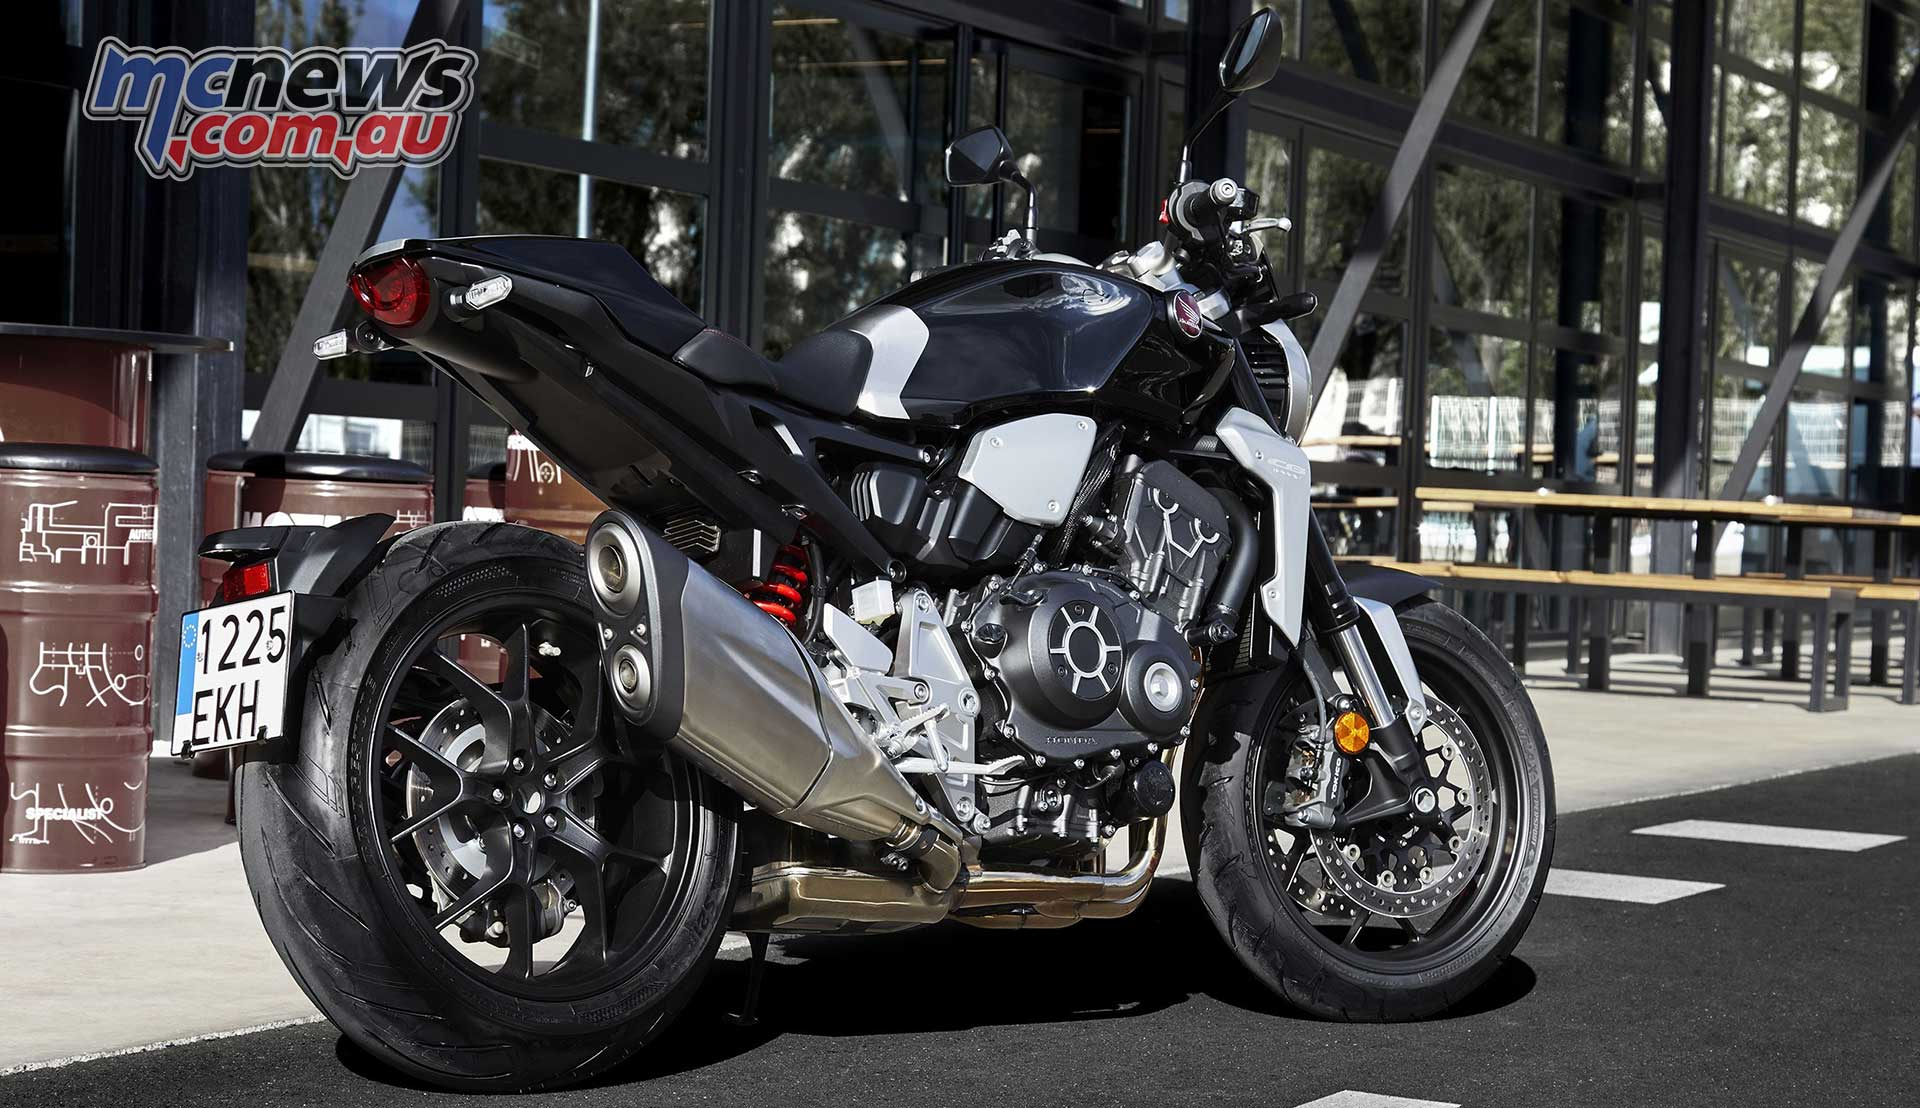 2018 Honda Cb1000r Arriving This Month At 16499 Mcnewscomau